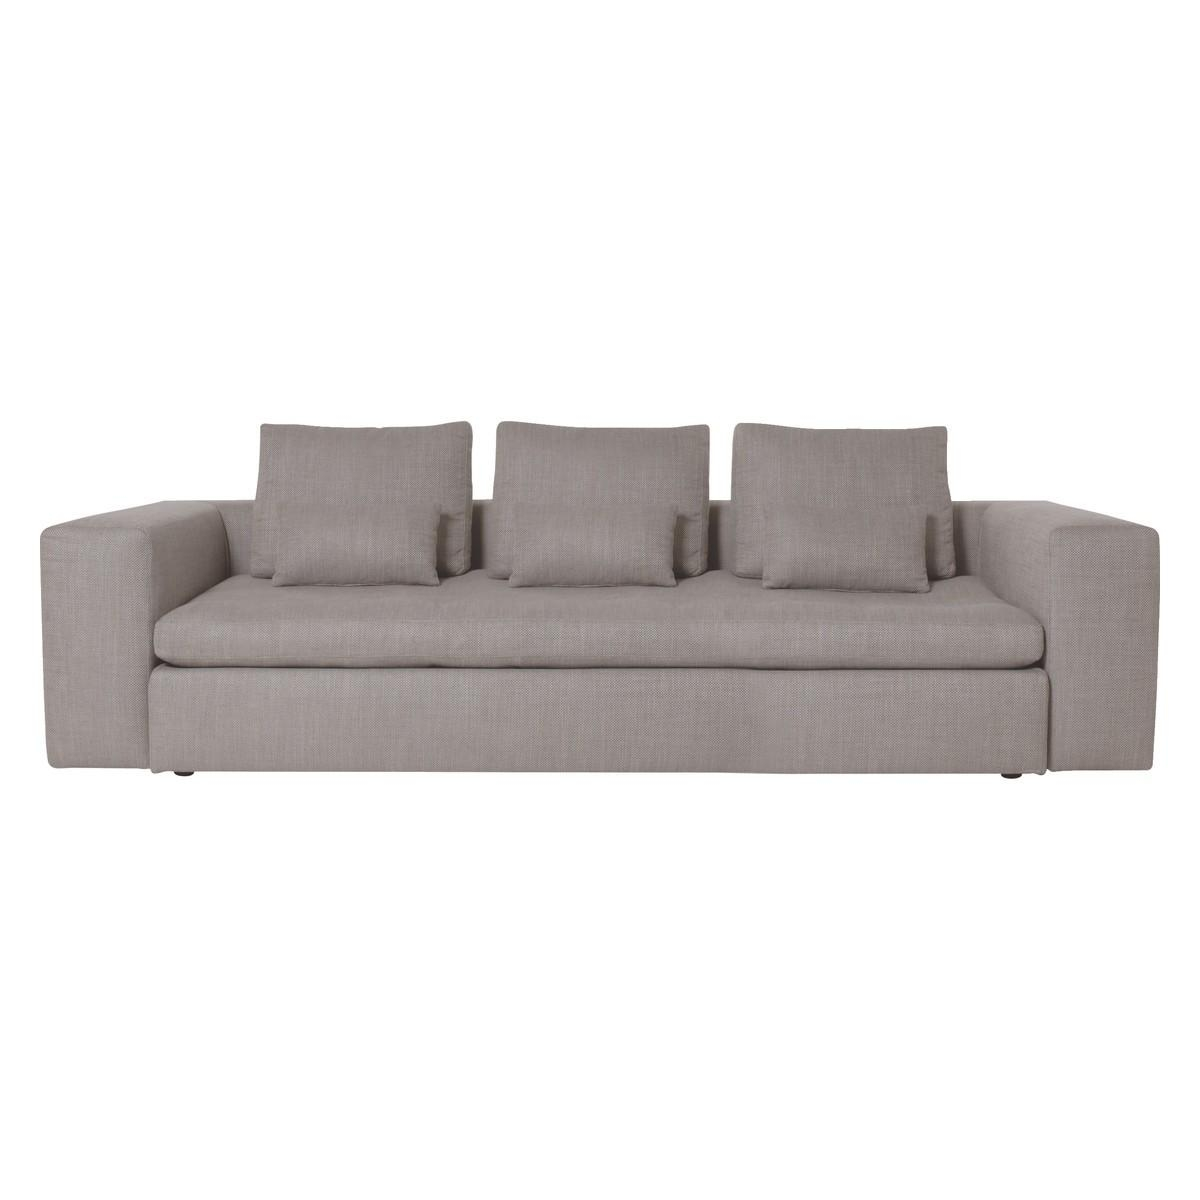 buy sofa uk barker and stonehouse warranty 20 best collection of large 4 seater sofas ideas